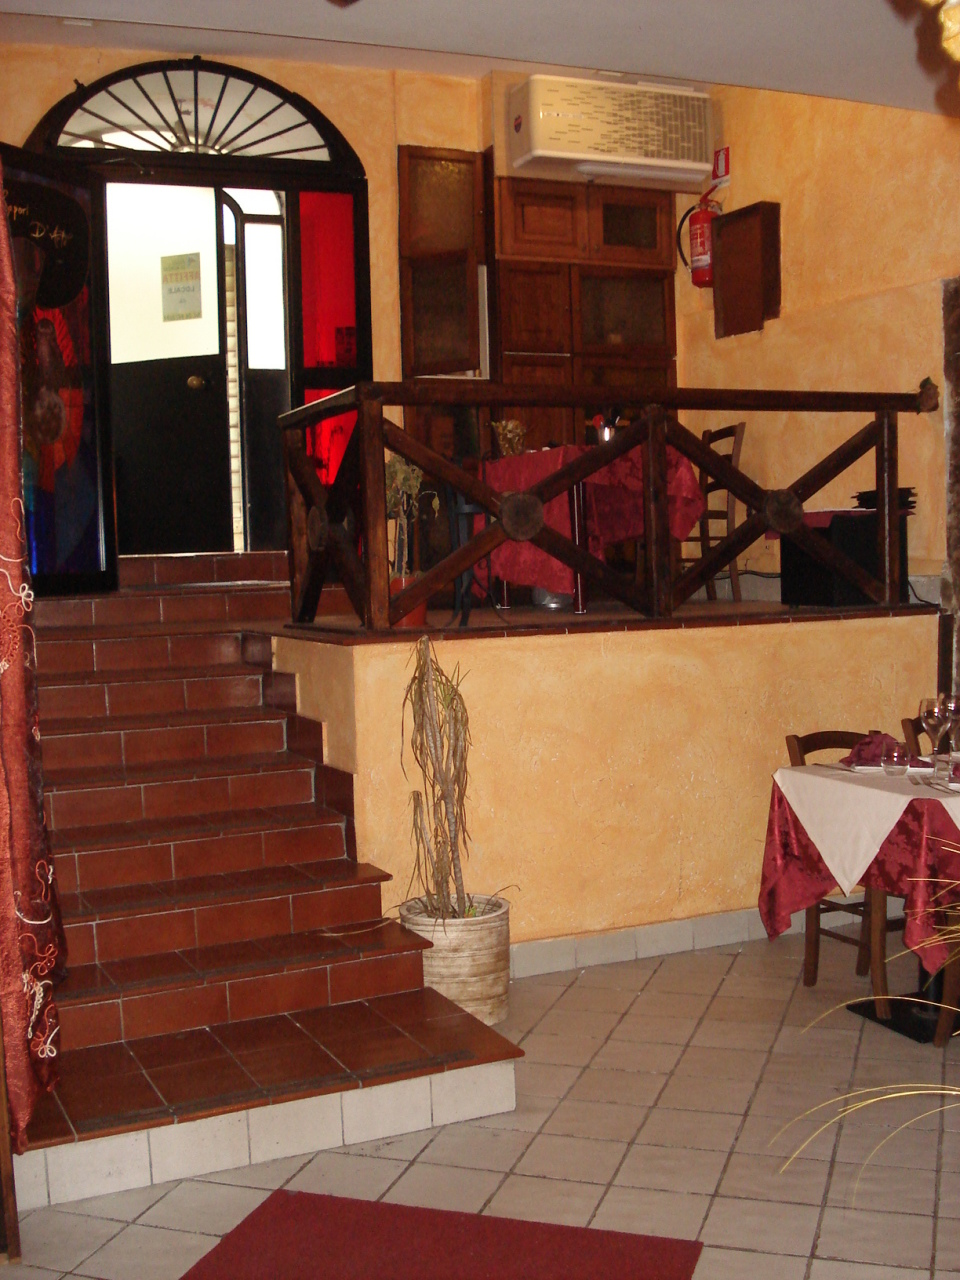 Locale commerciale a Frascati Rif. 11390194